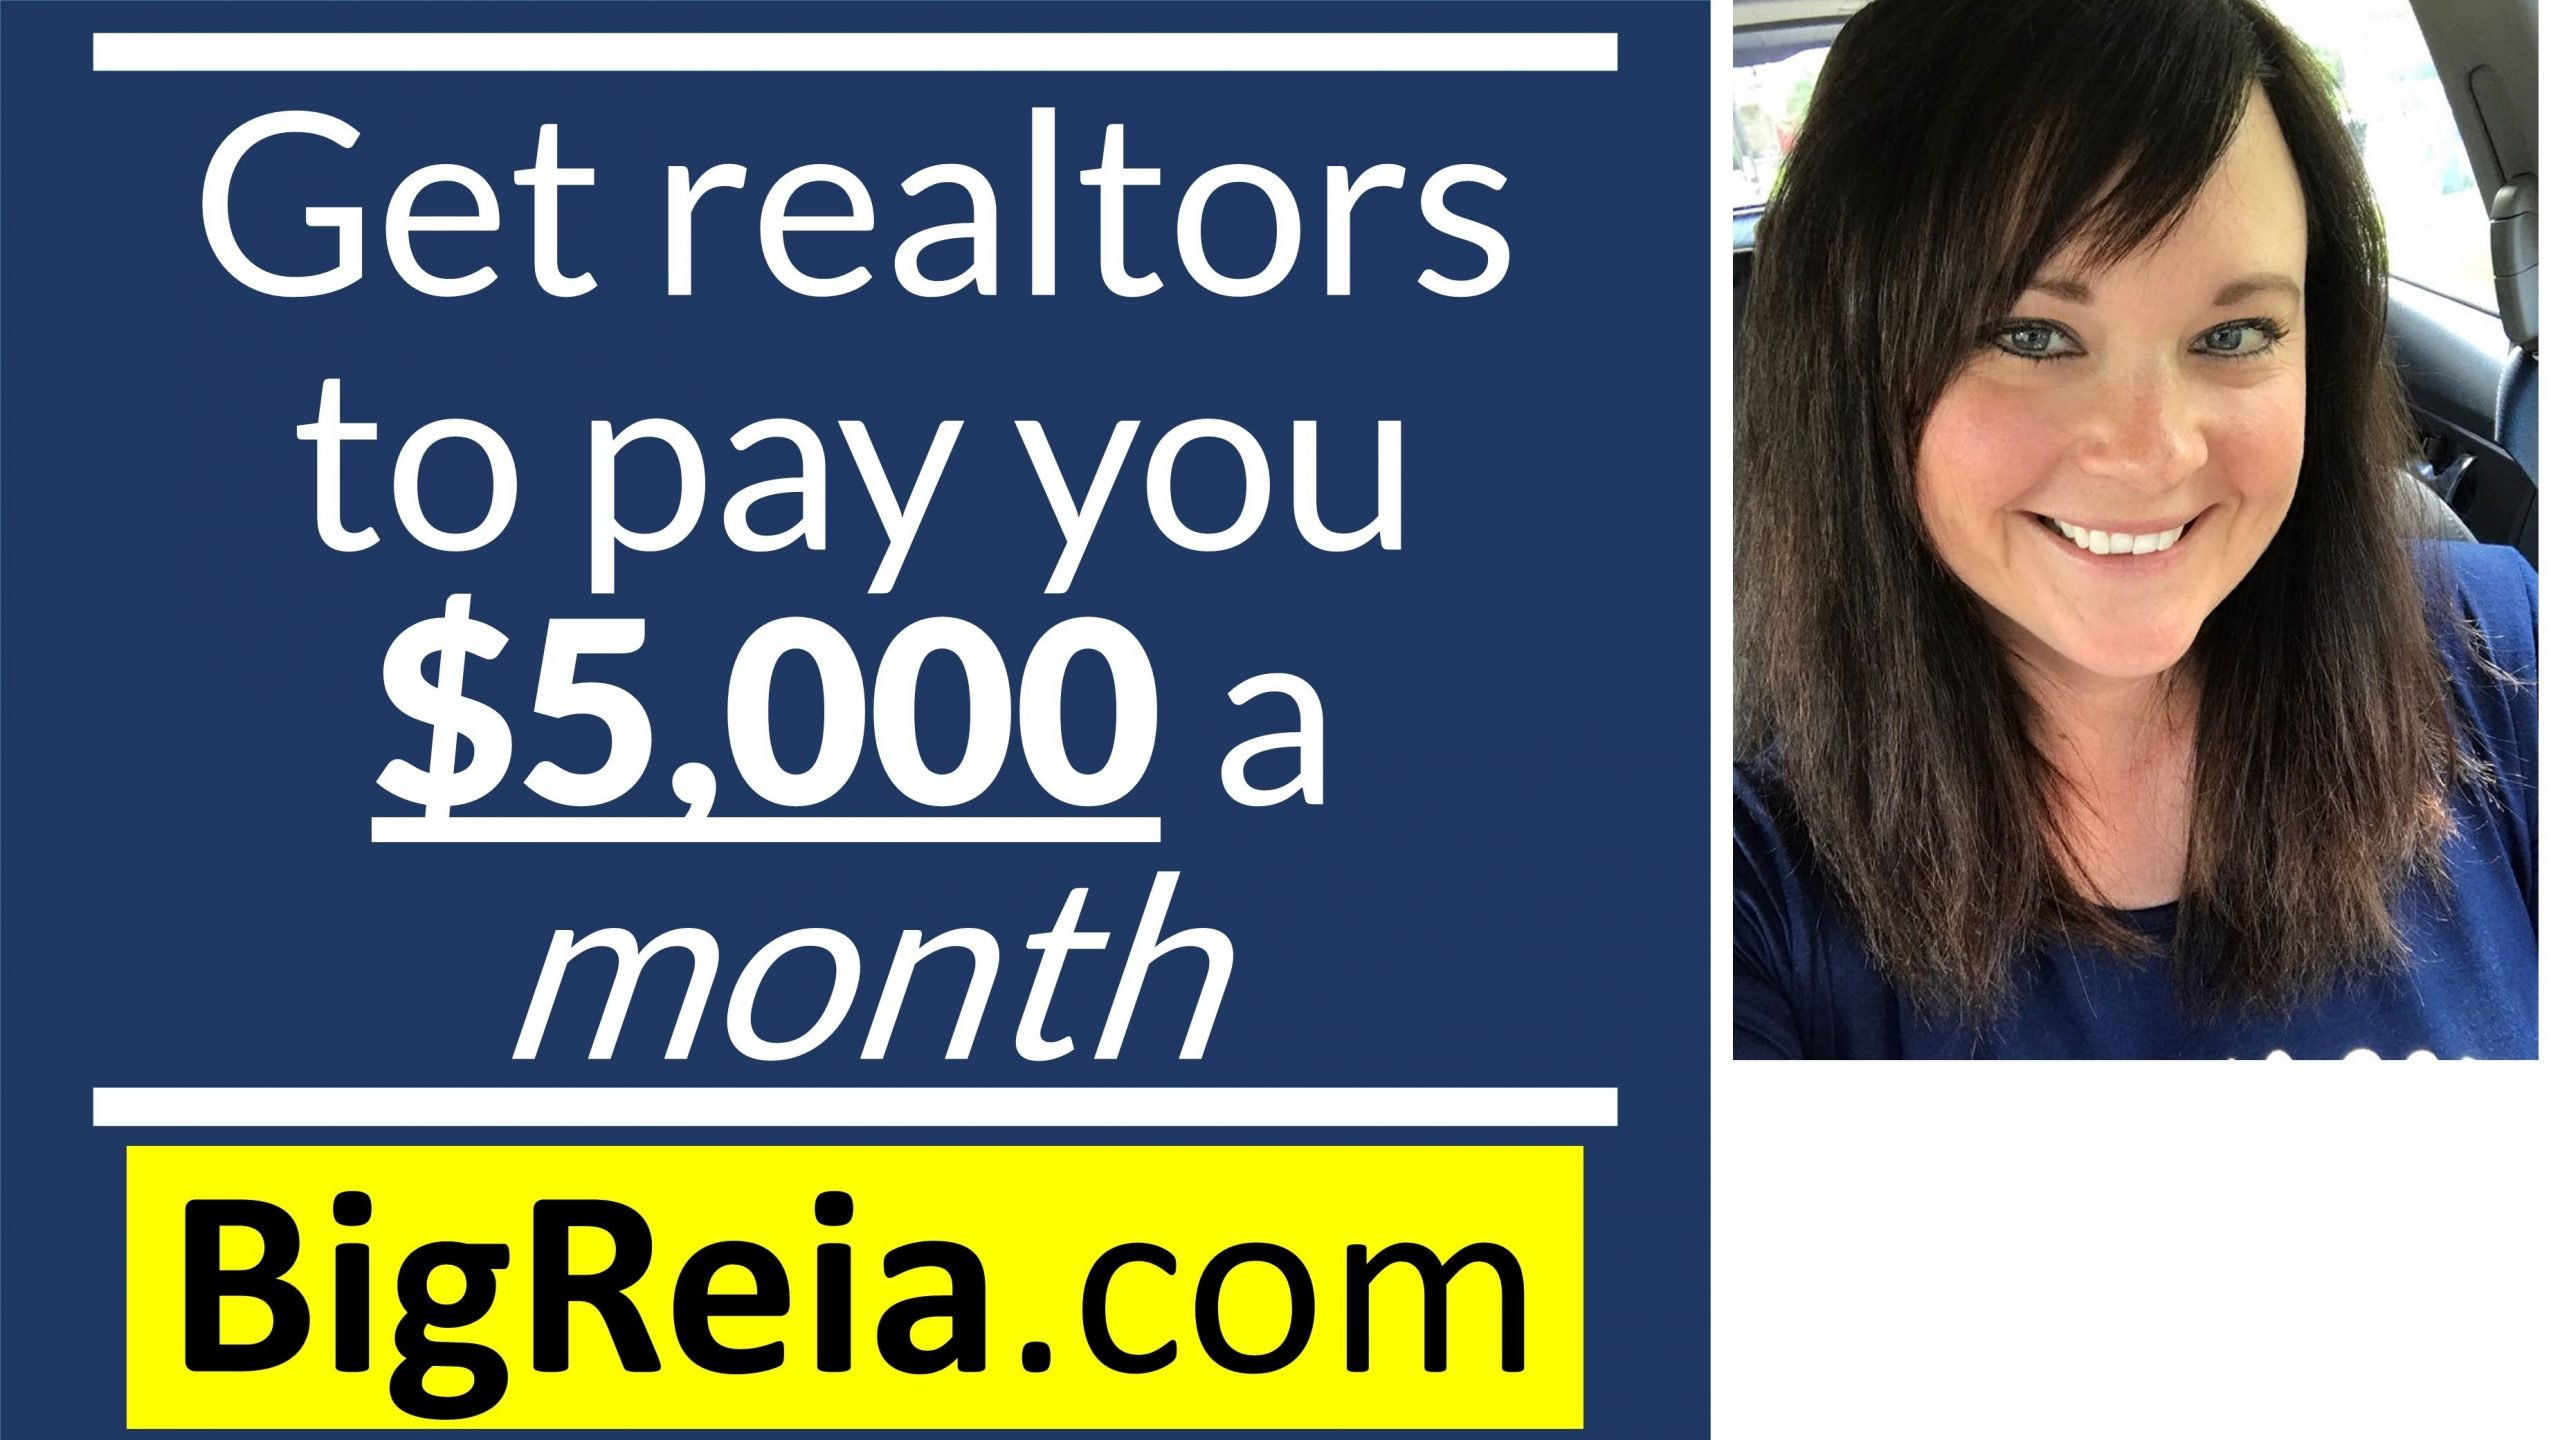 Getting realtors to pay you $5,000 a month, by selling them back their OWN testimonials LOL.